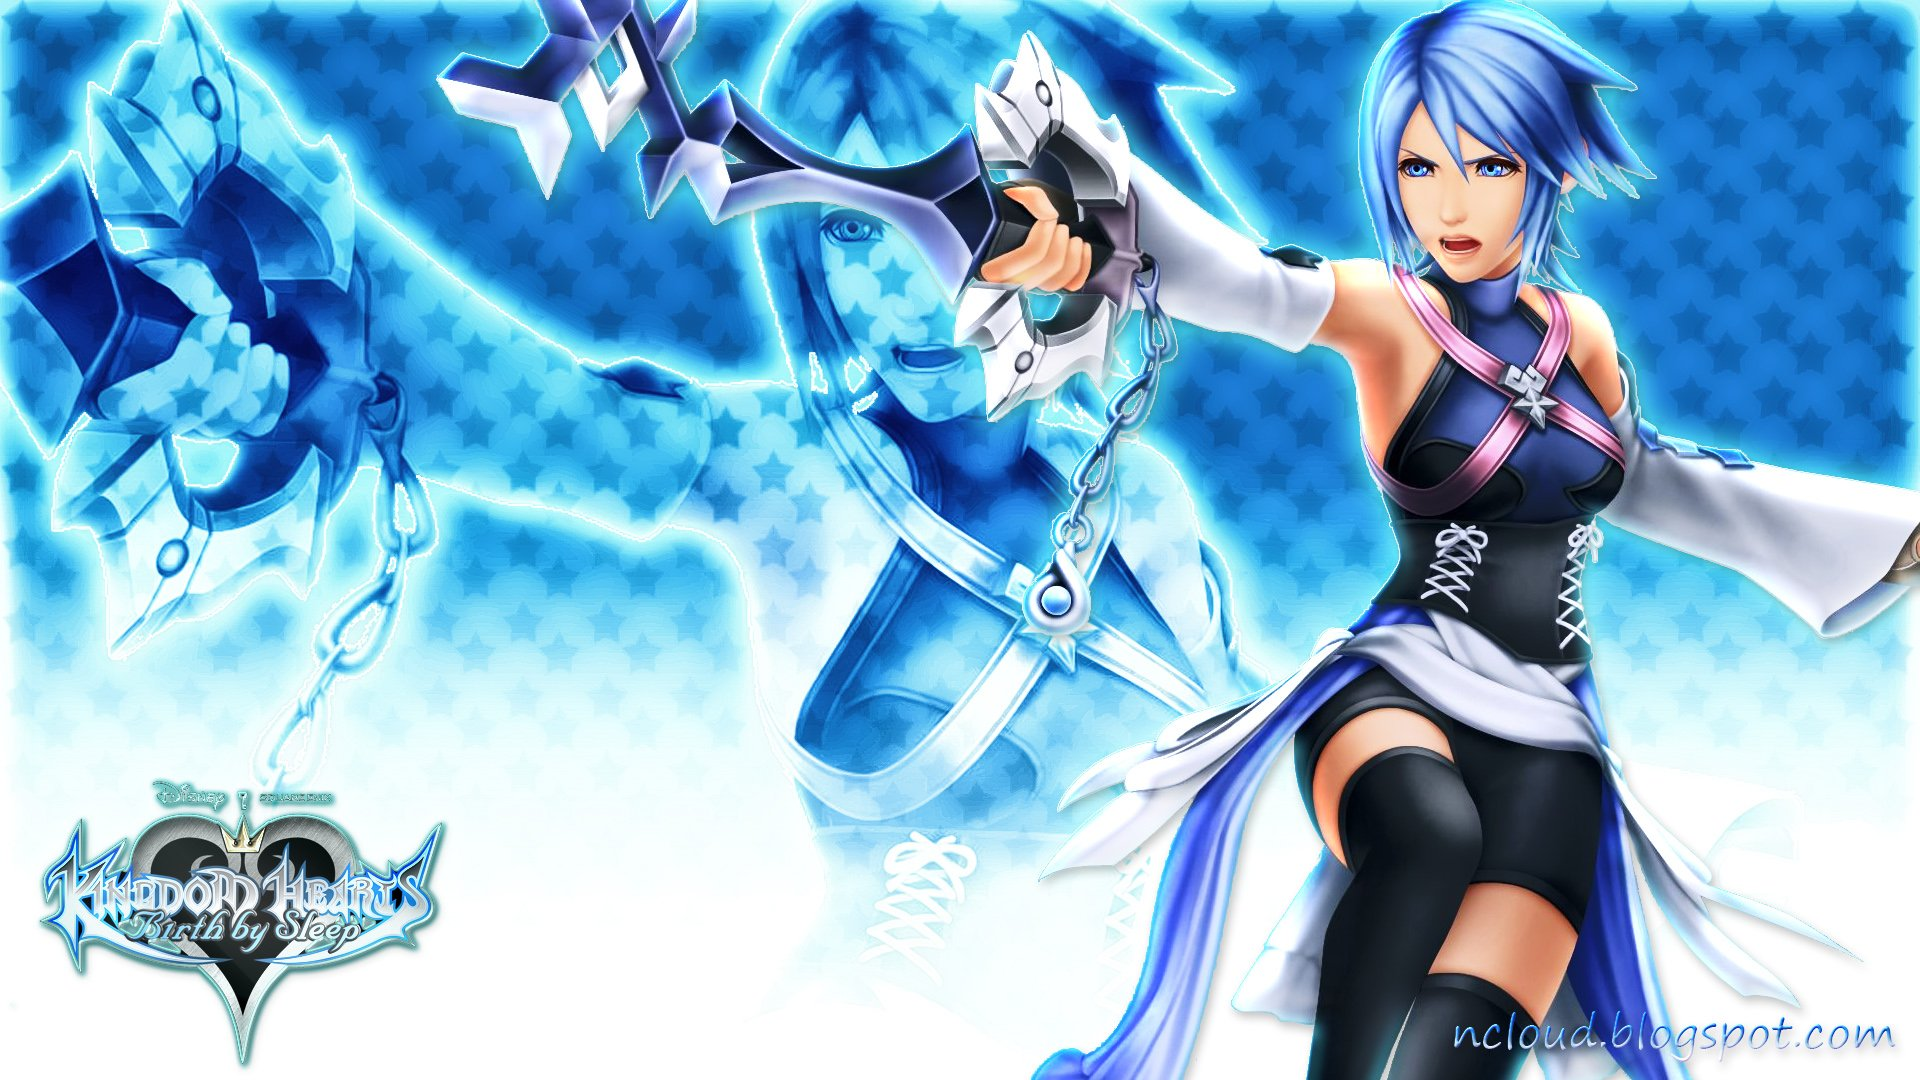 Movies Music Anime My Kingdom Hearts Birth By Sleep Aqua Wallpaper 1920x1080